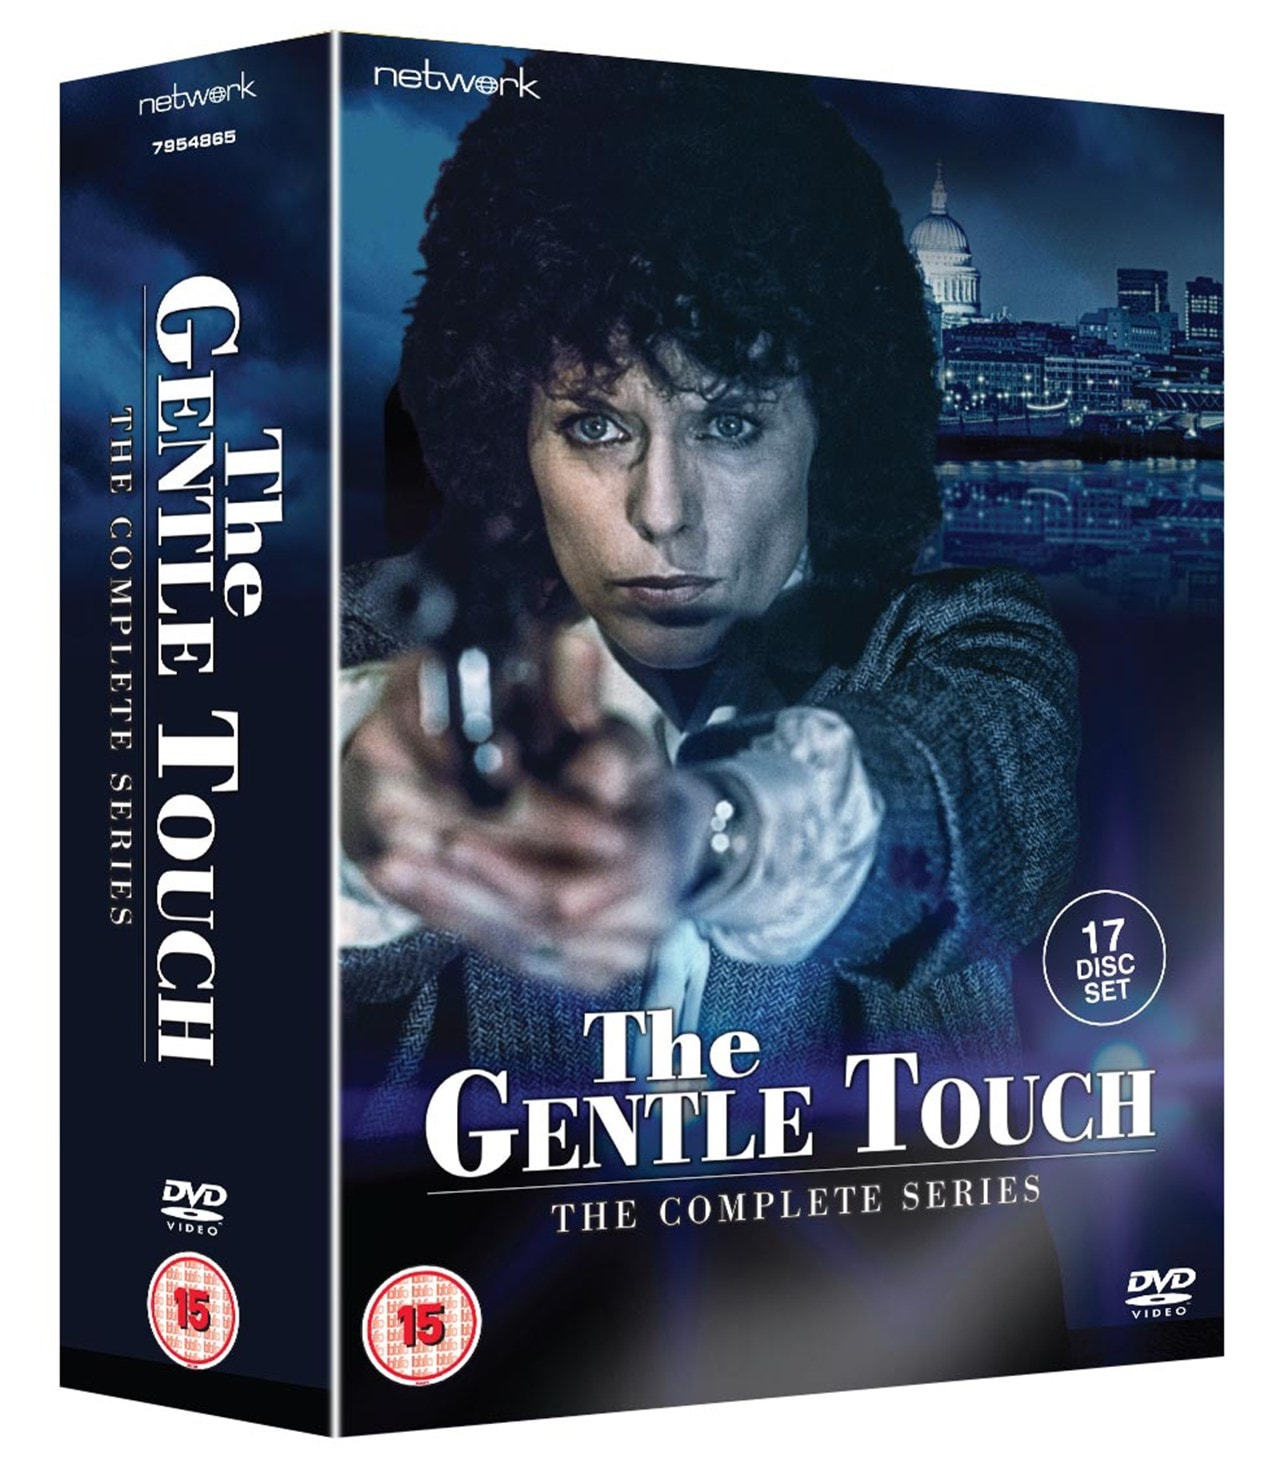 The Gentle Touch: The Complete Series - 2